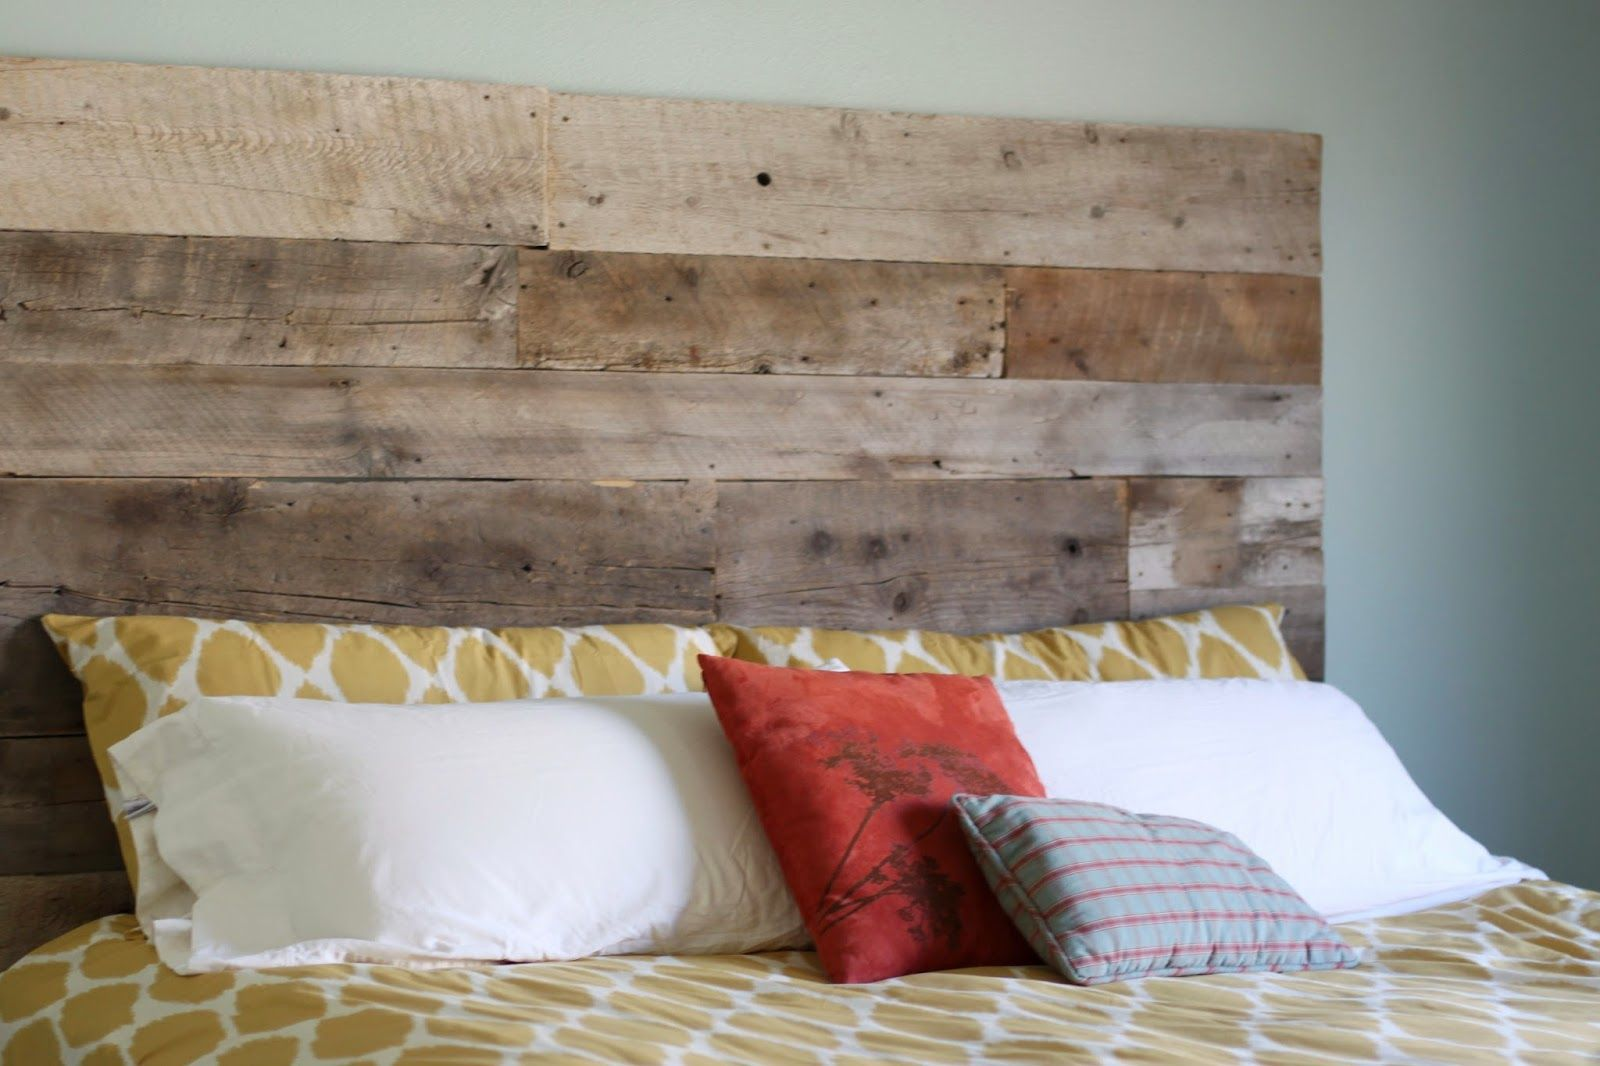 It only took me about a year to get this project done. I acquired some reclaimed wood from my kind brother when he tore down the 30-somethin...